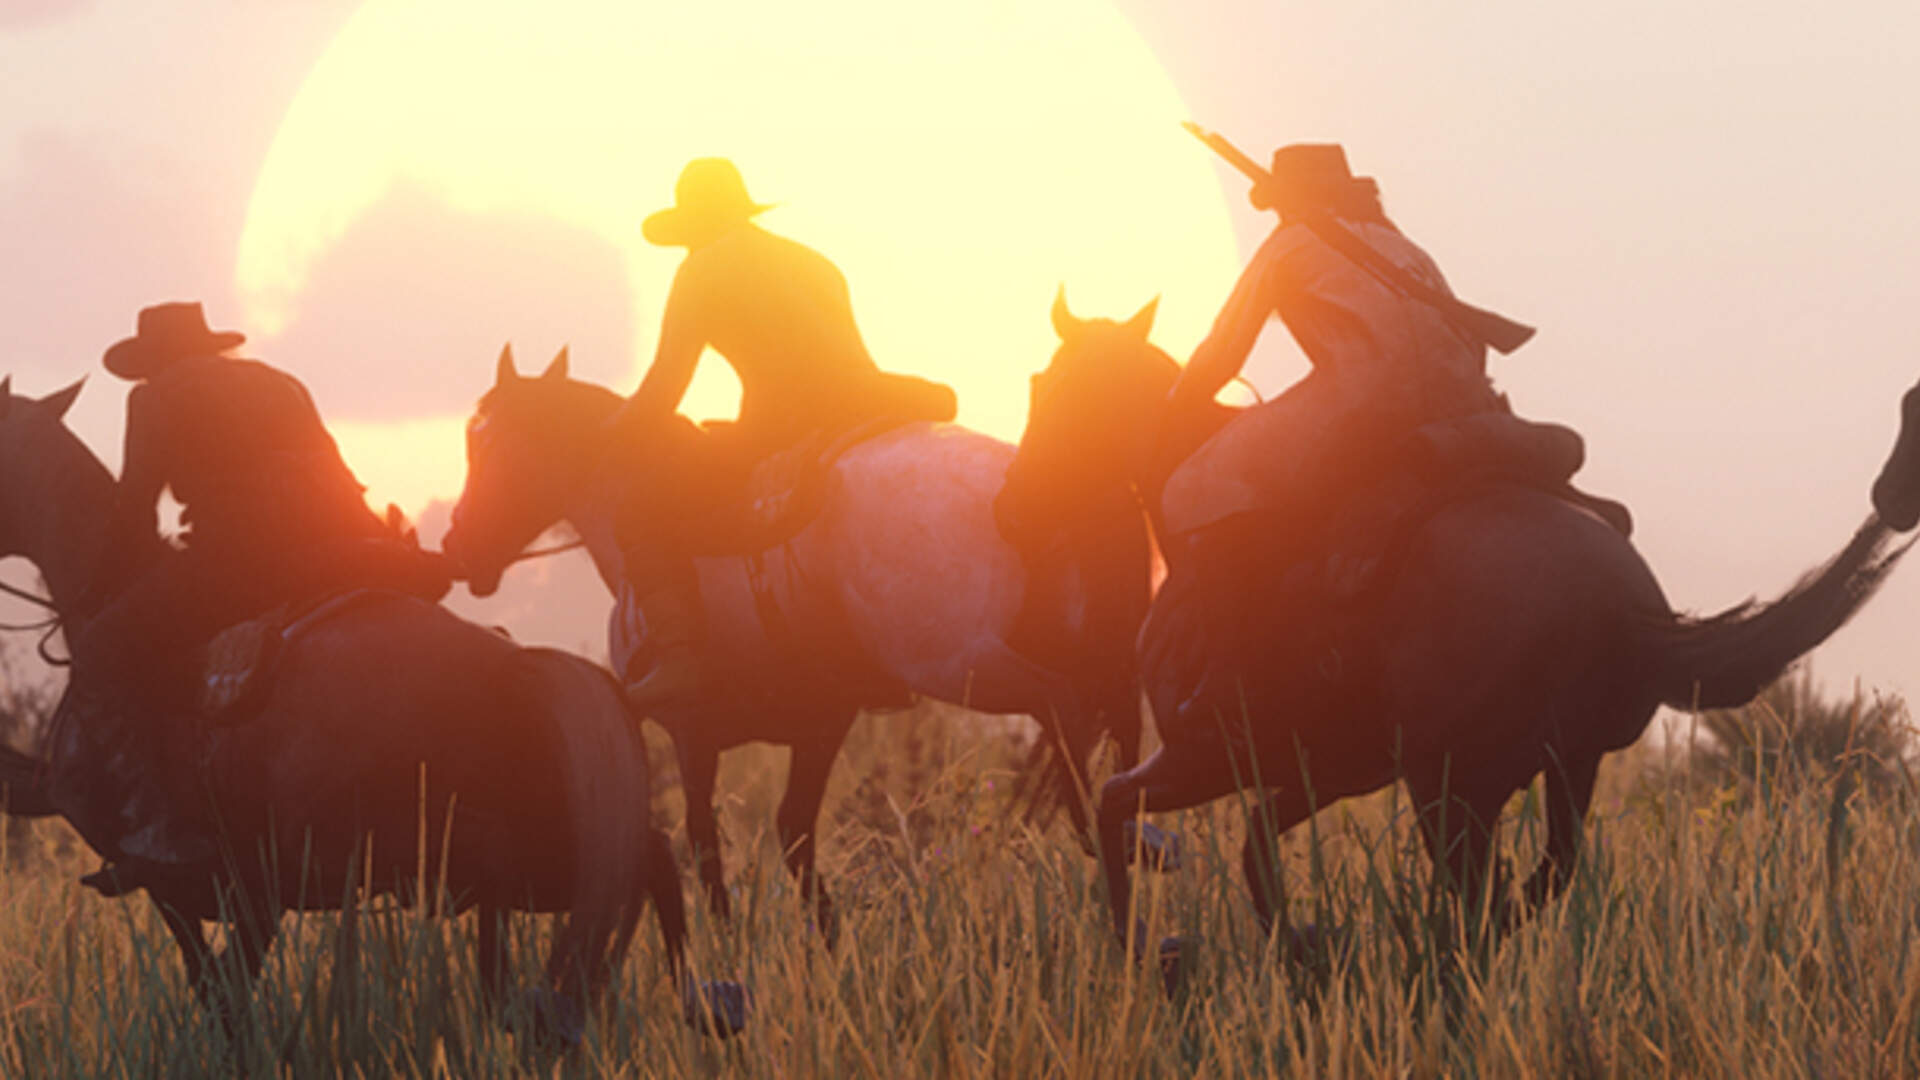 Red Dead Online: There Are Currently No Plans to Reset Player Progression